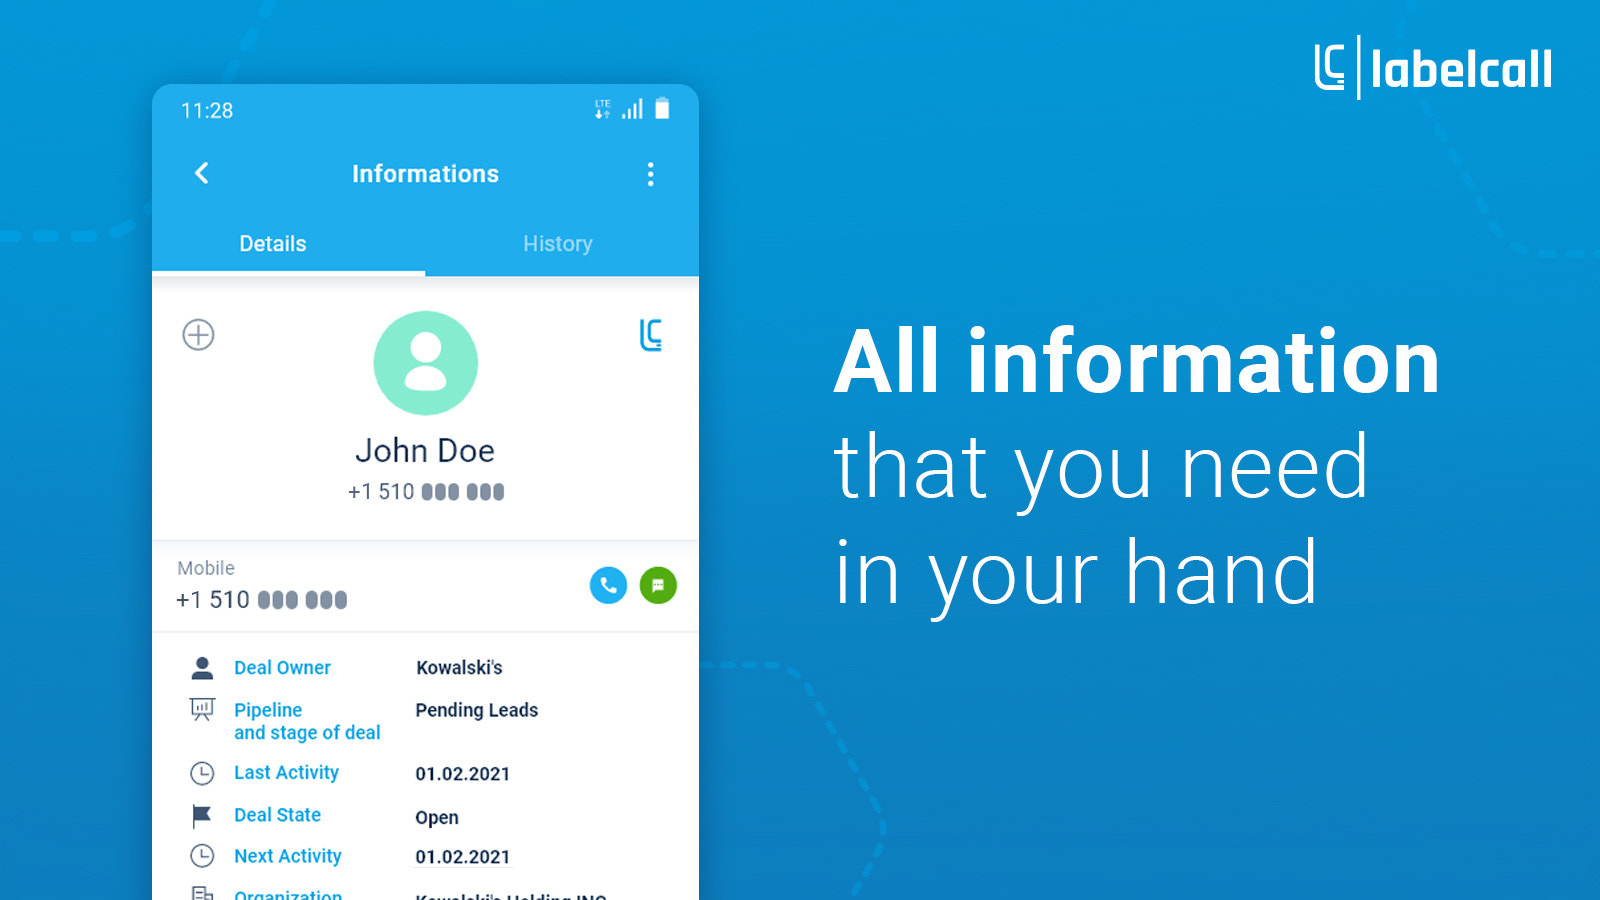 All information in your hand